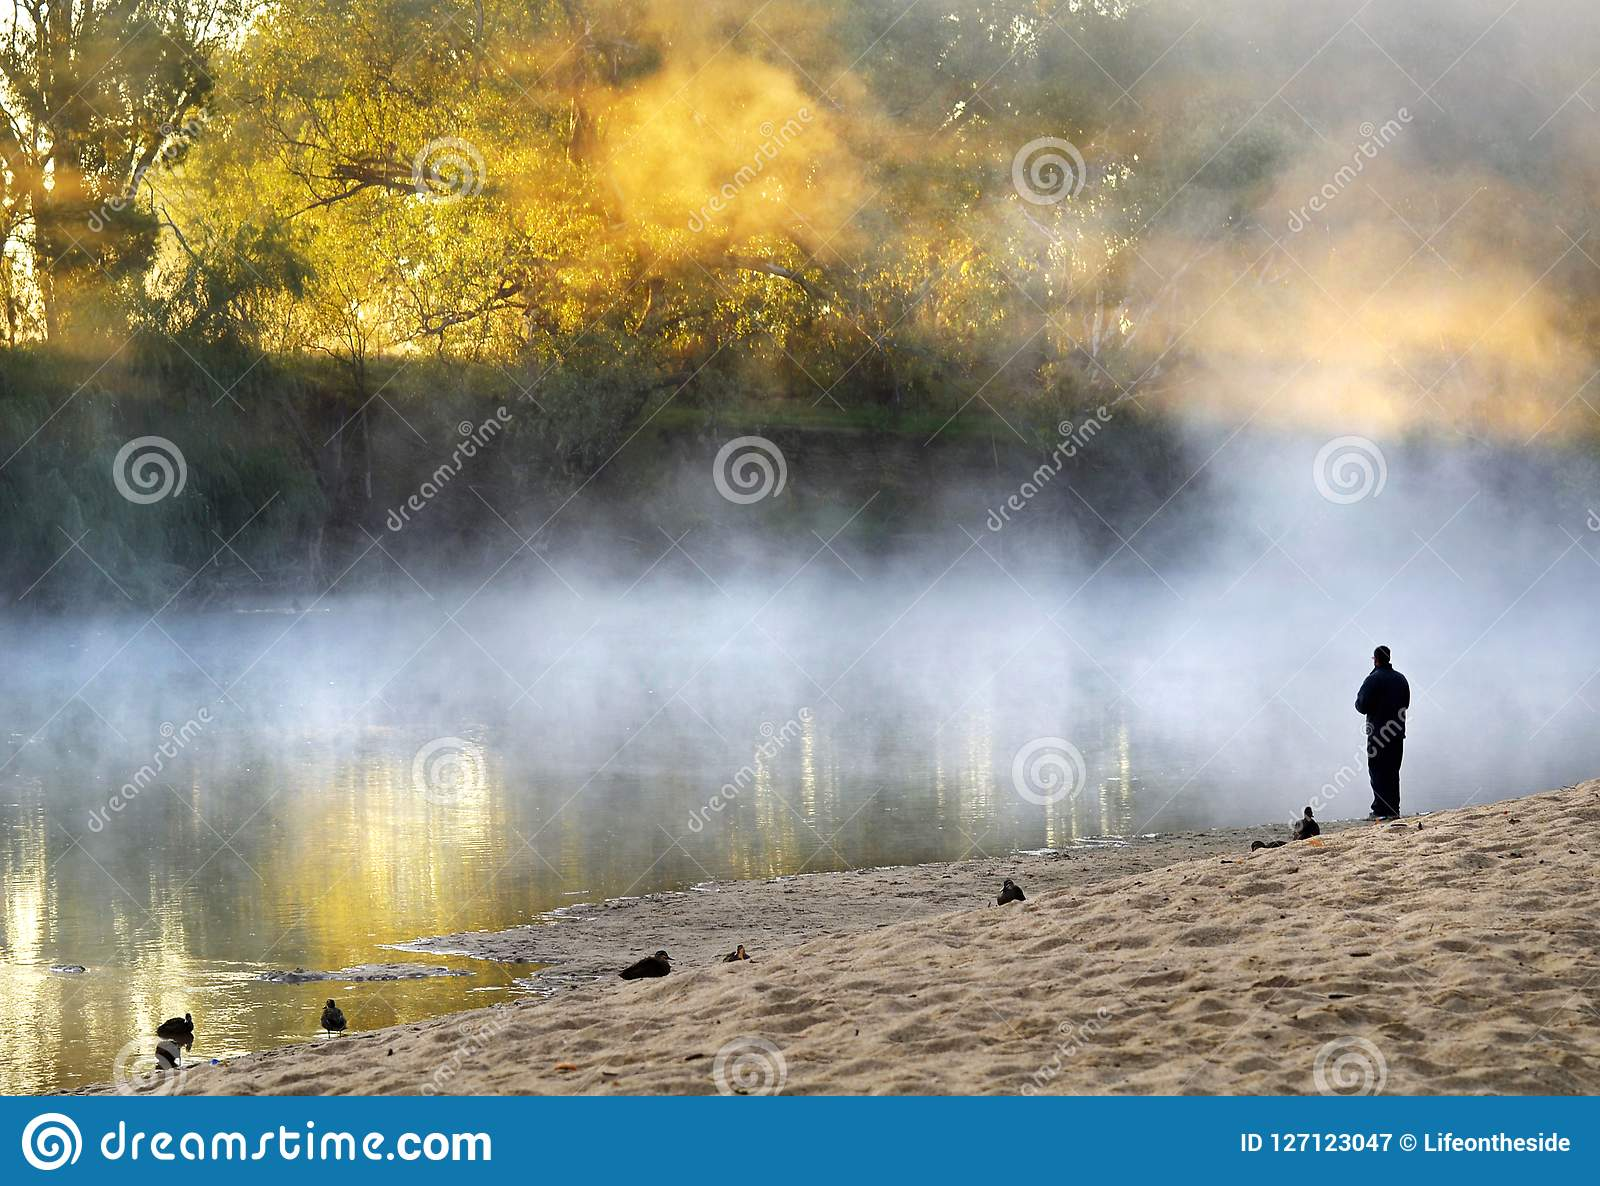 Lonely man standing soul searching on bank foggy misty river